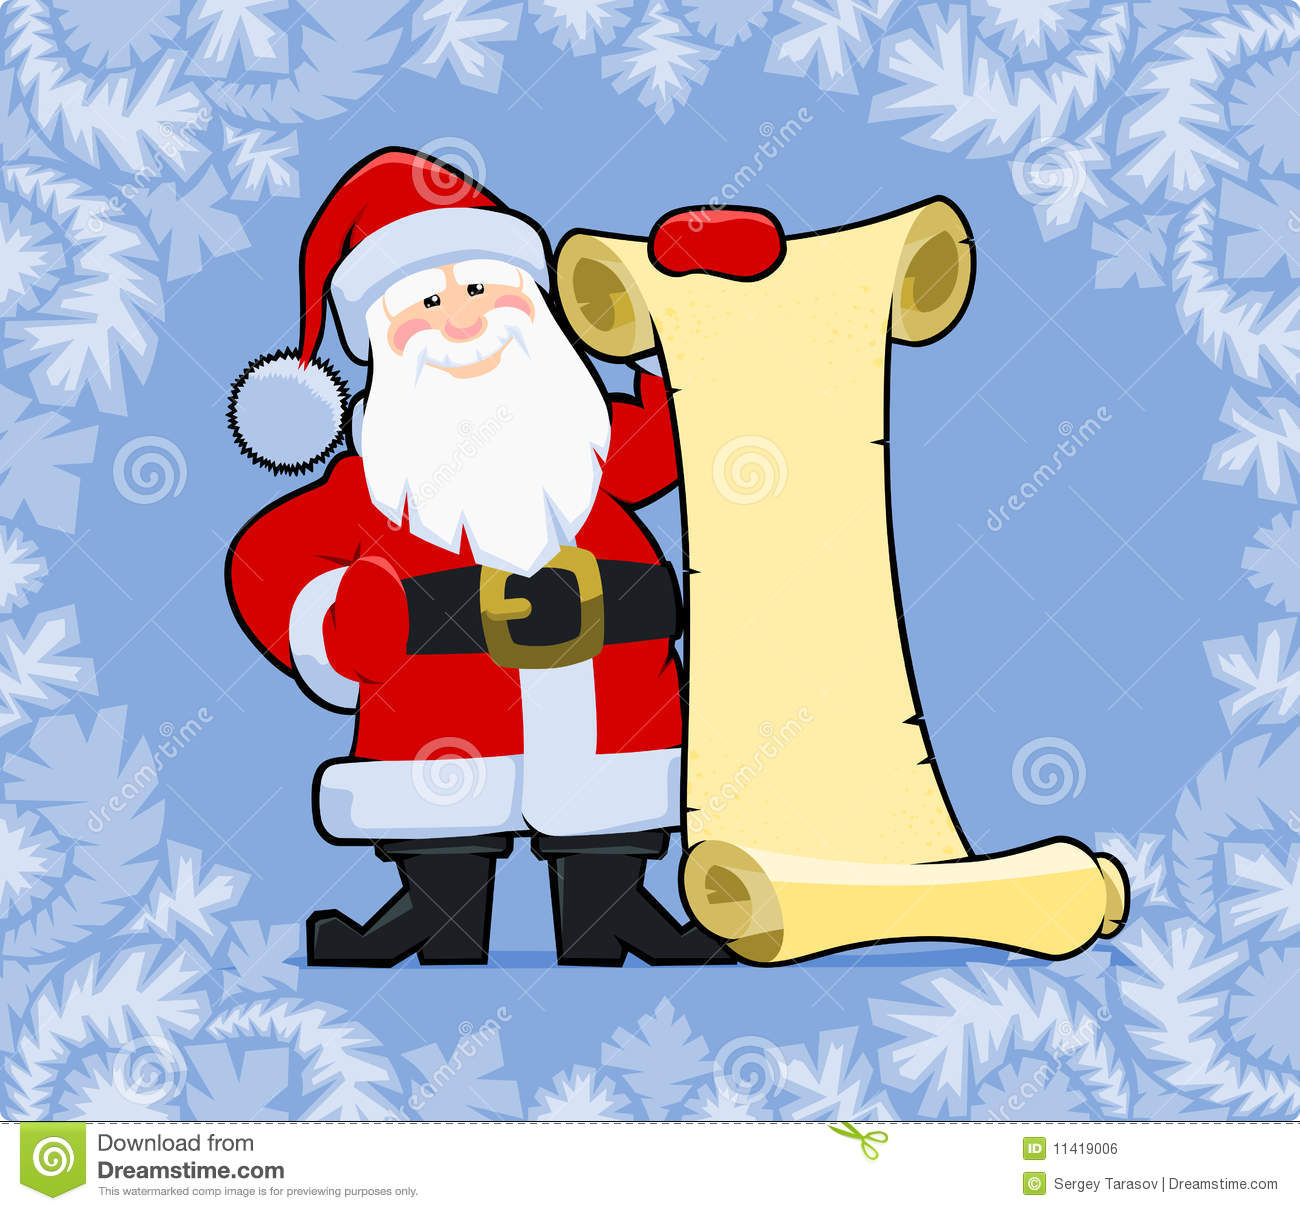 Santa Claus holding blank paper scroll. Christmas greeting card.